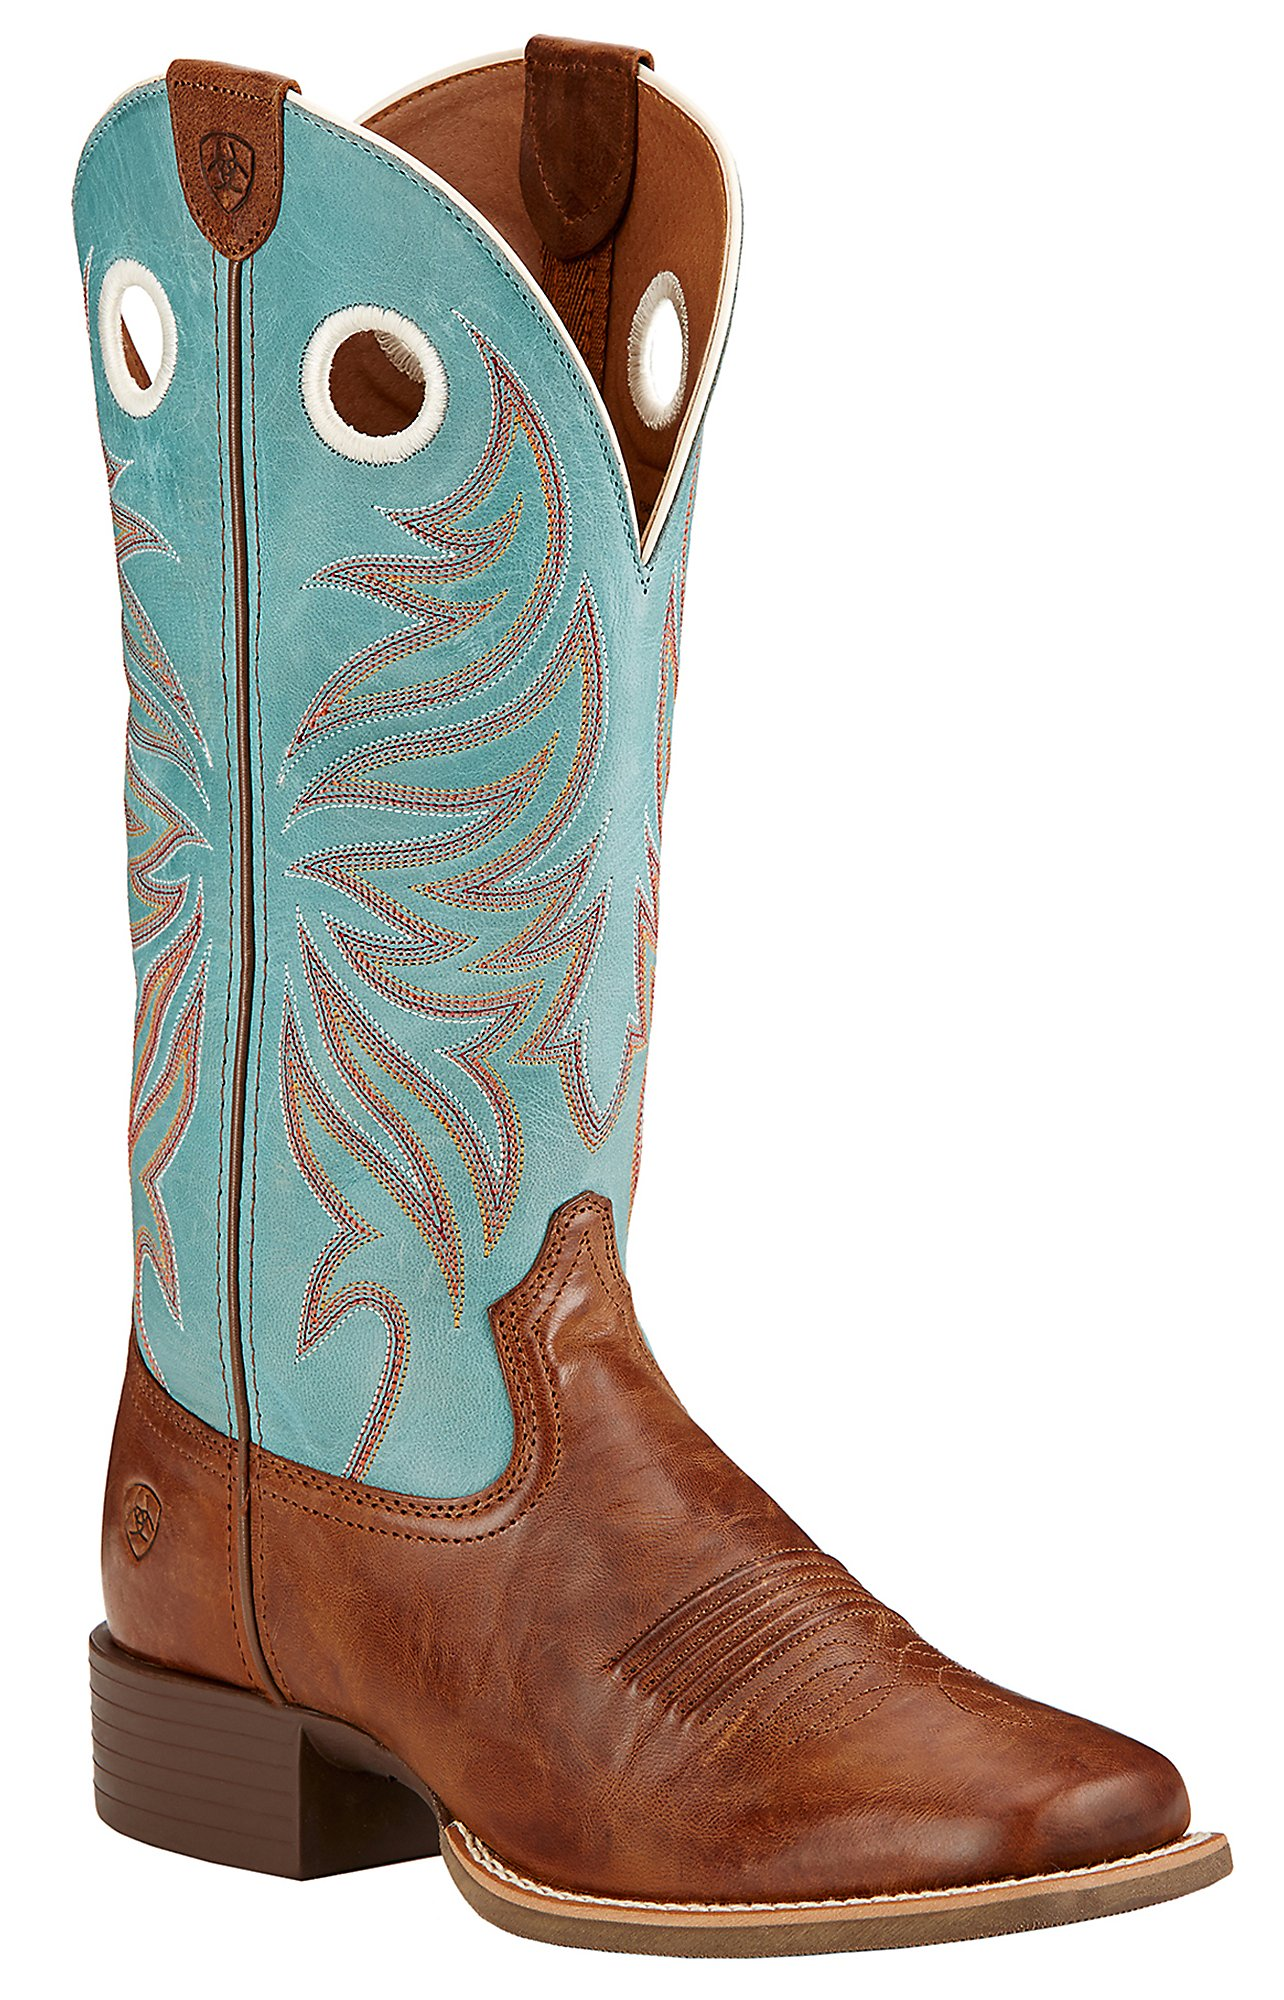 Ariat Round Up Ryder Women's Wood Brown with Sky Blue Double Welt ...